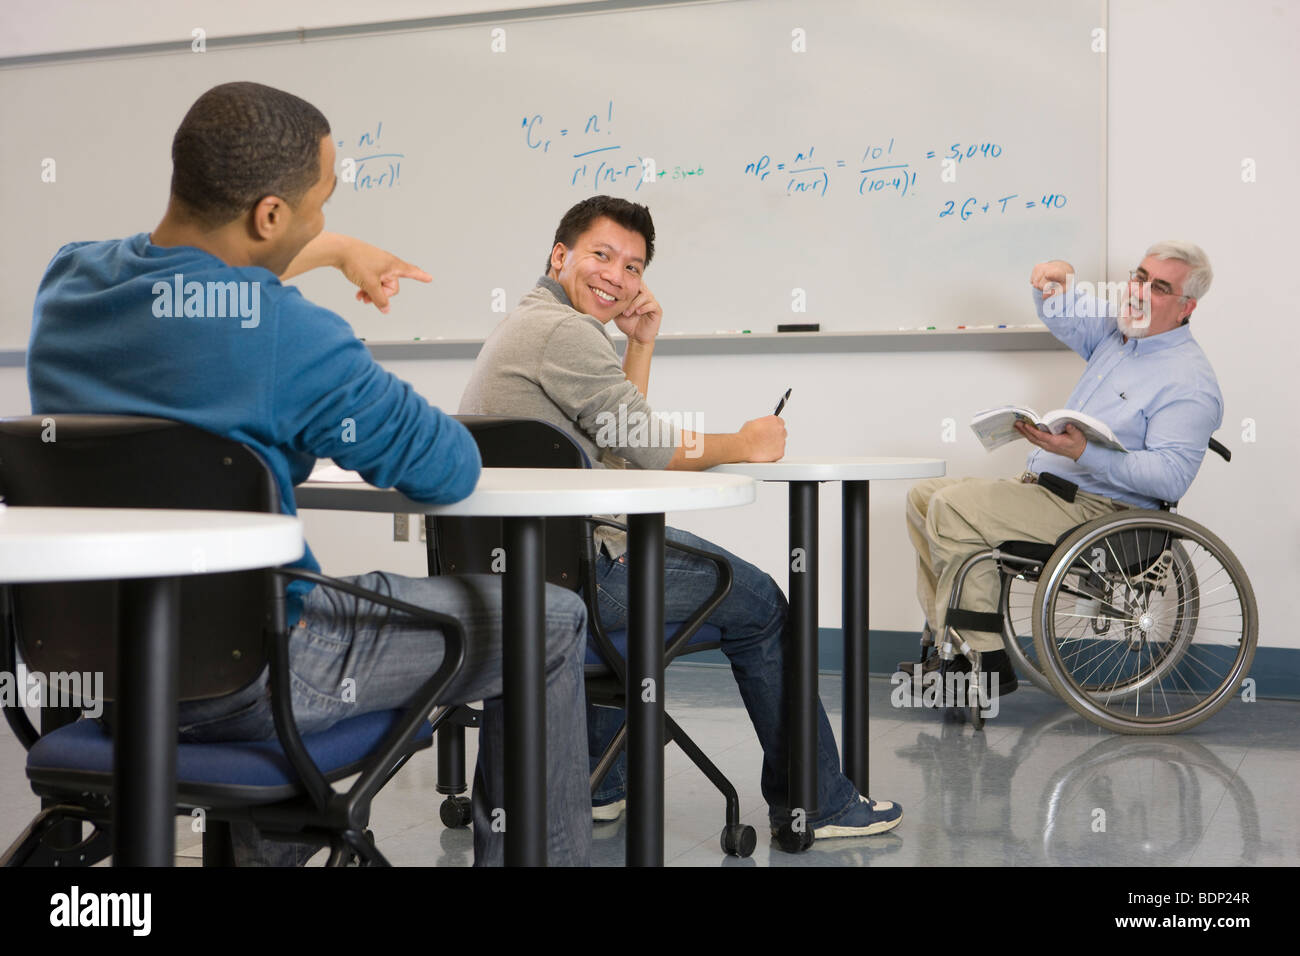 University professor pointing at a student in a classroom - Stock Image